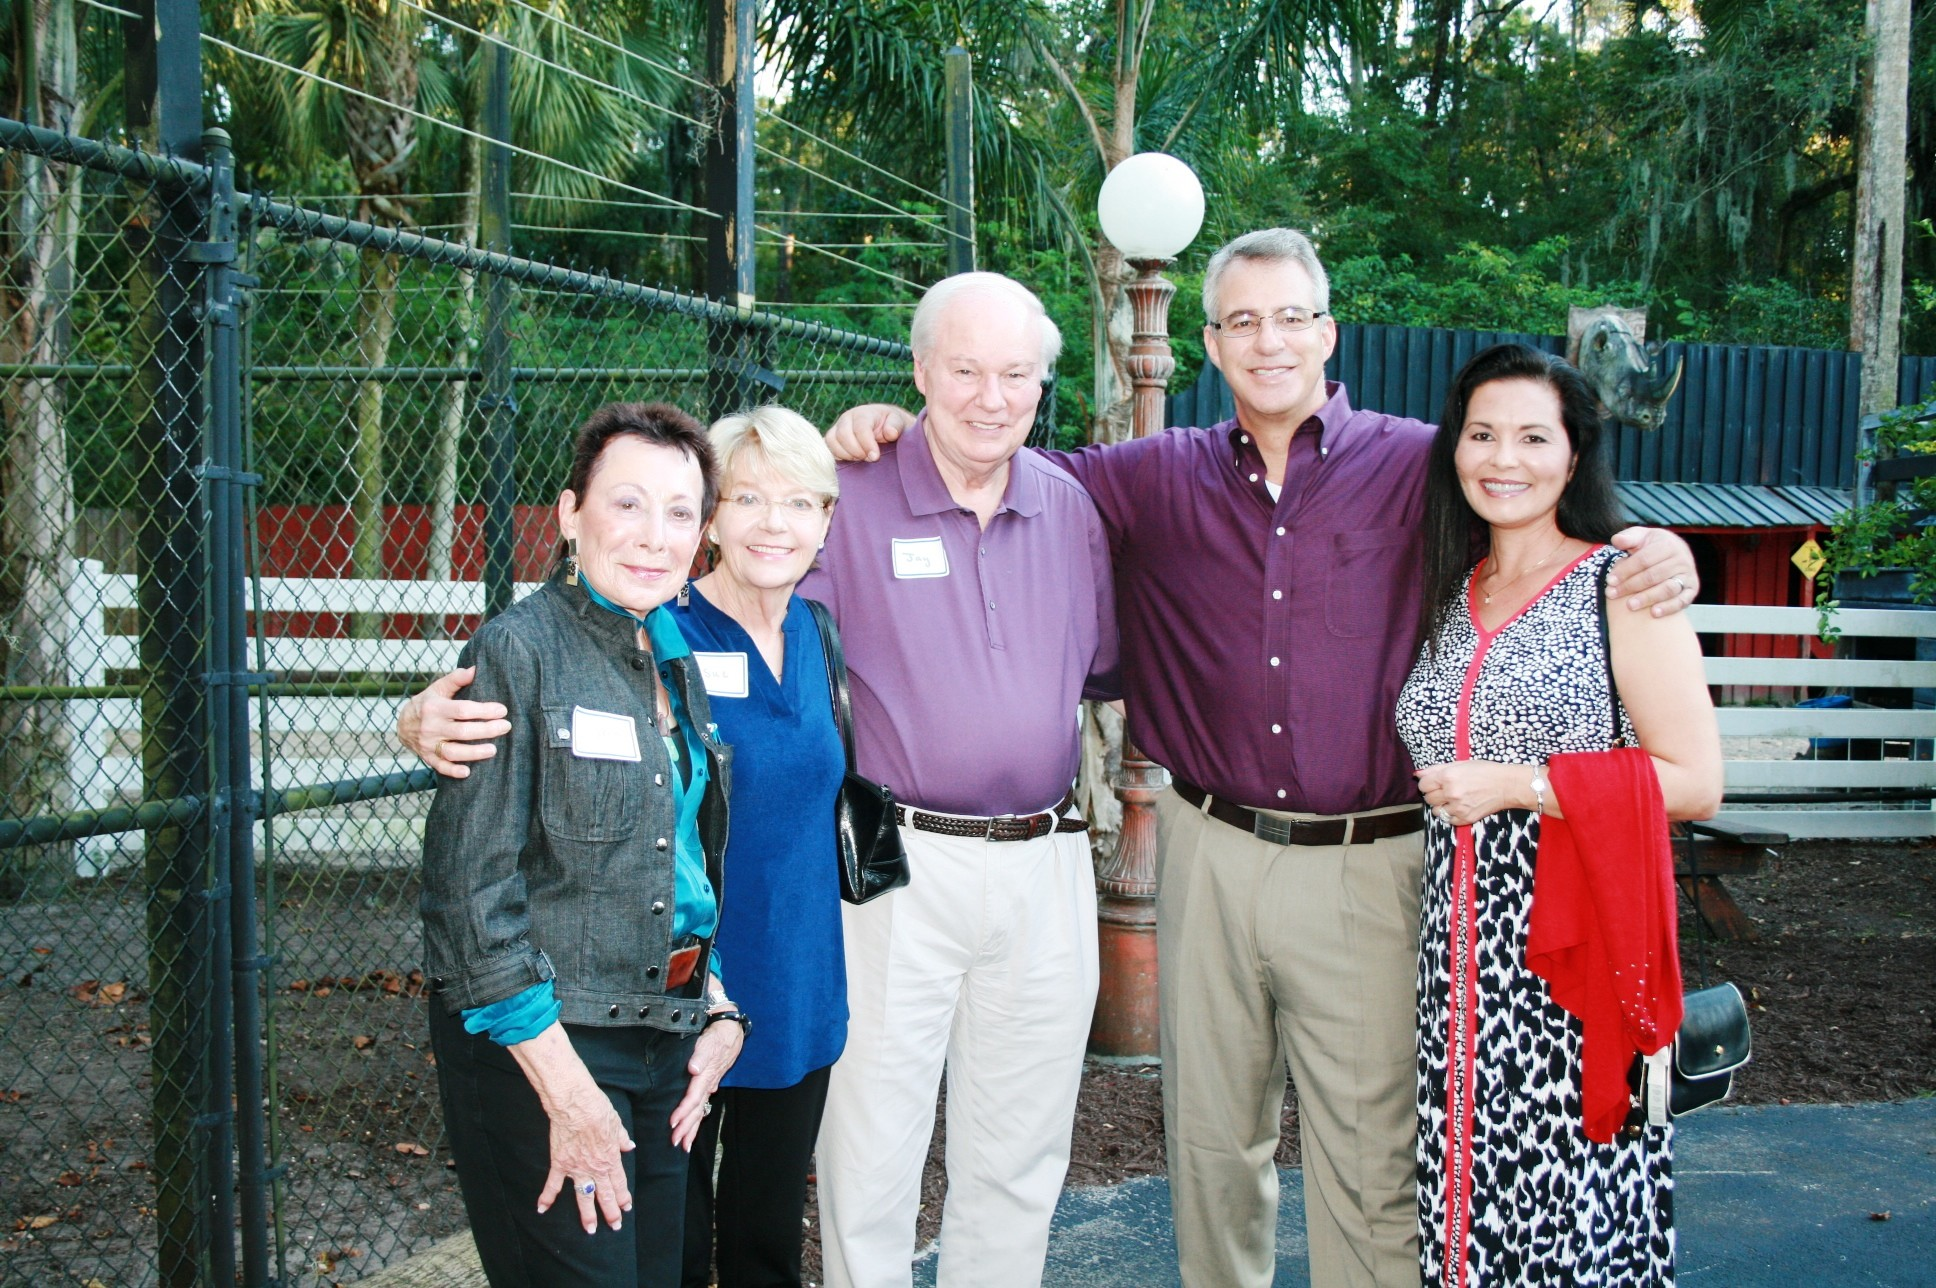 from left; Daryl Barker, St. Johns County Board of County Commissioner Jay Morris and wife Sue Morris, Scott Nelowet - Fantasy Farms Vice President of Marketing